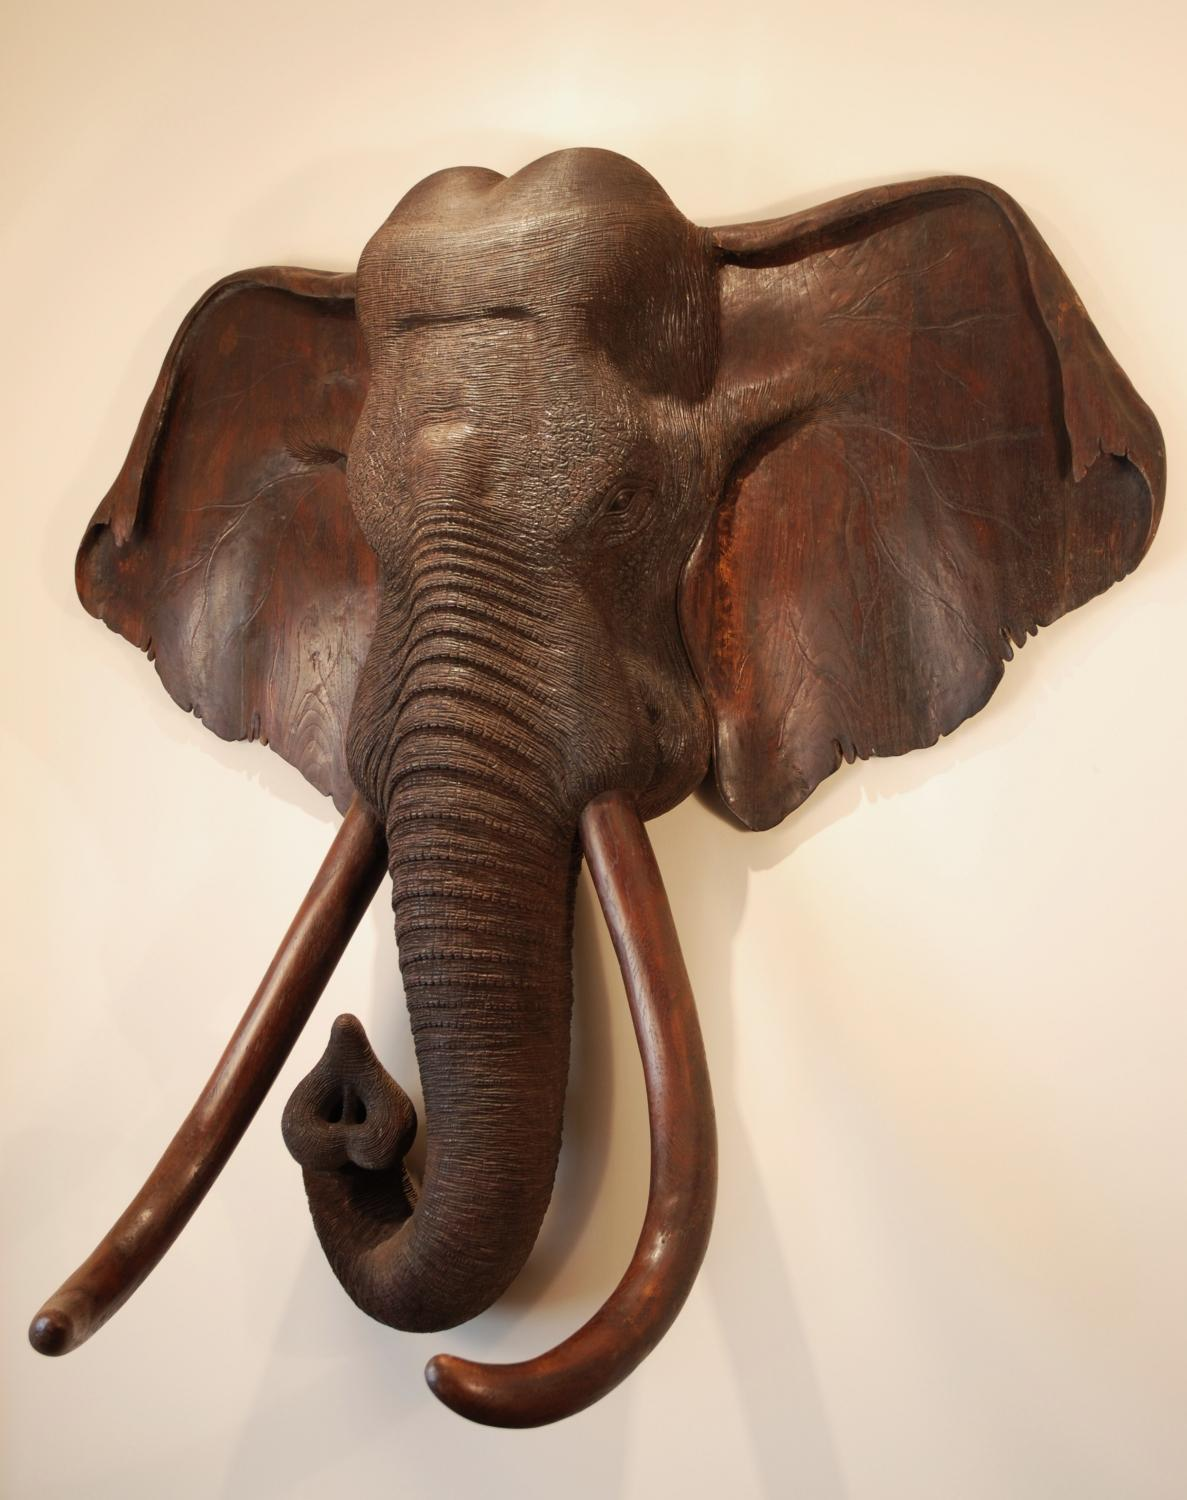 Large thc carved wooden elephant head in wood carvings